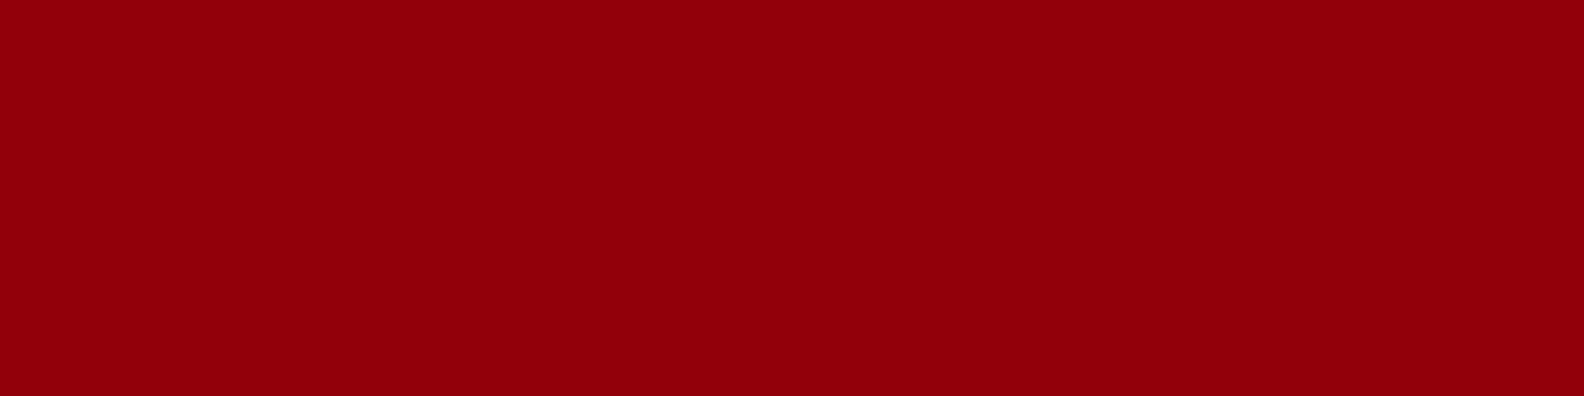 1584x396 Sangria Solid Color Background